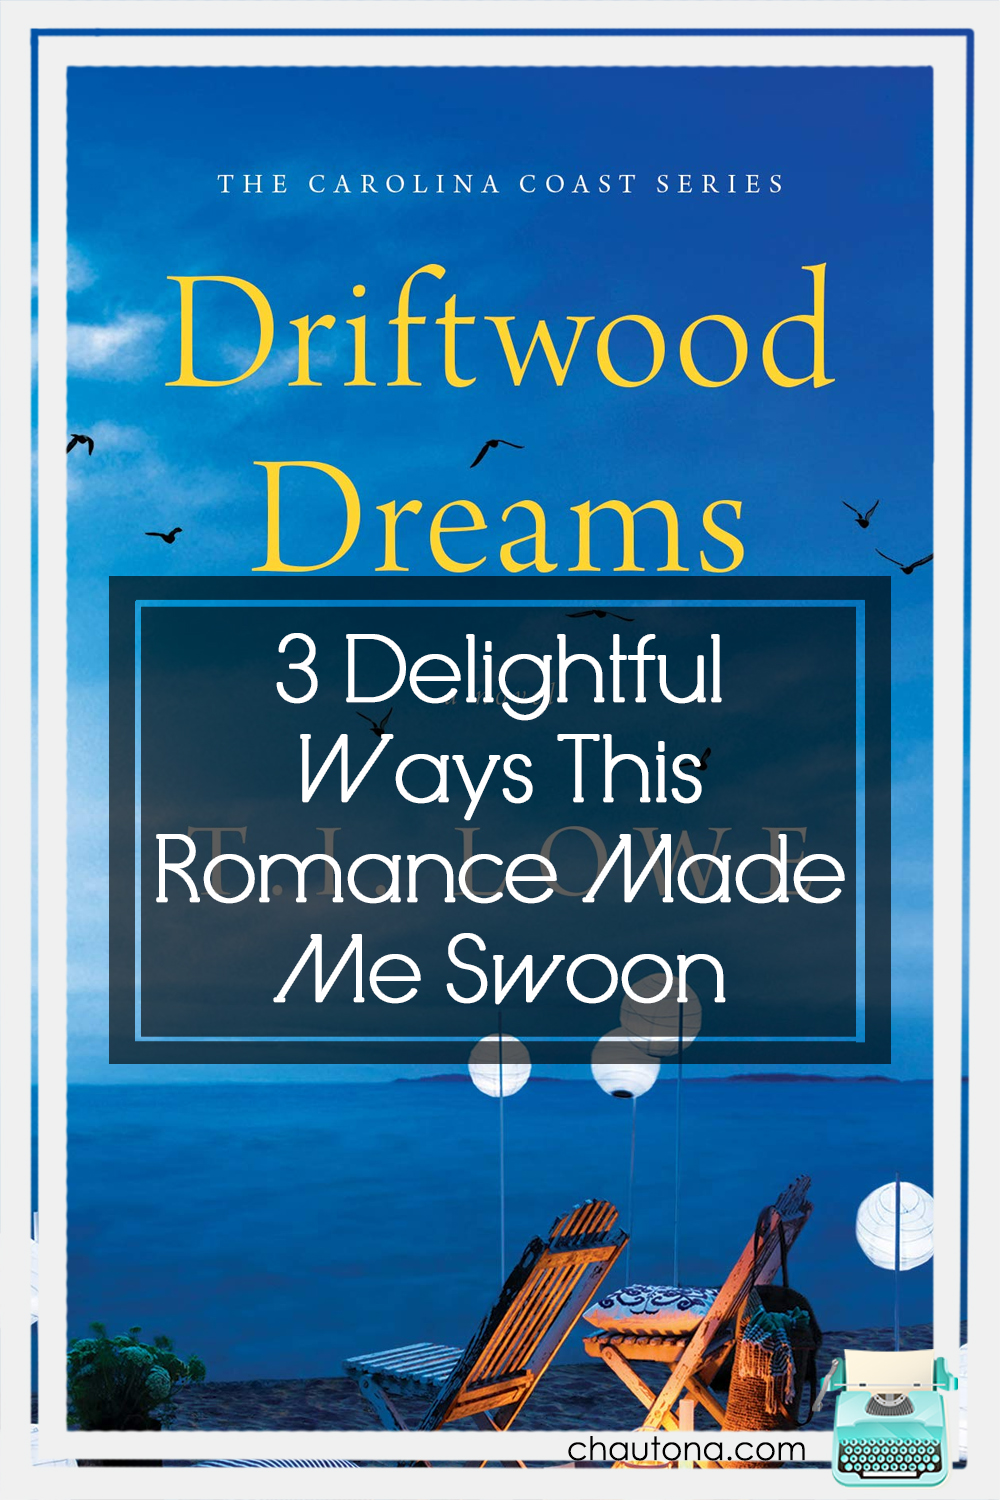 Driftwood Dreams turns a delicate, delightful romance into a deep, spiritual lesson in the steadfast, tender, paitent love of the Lord. via @chautonahavig